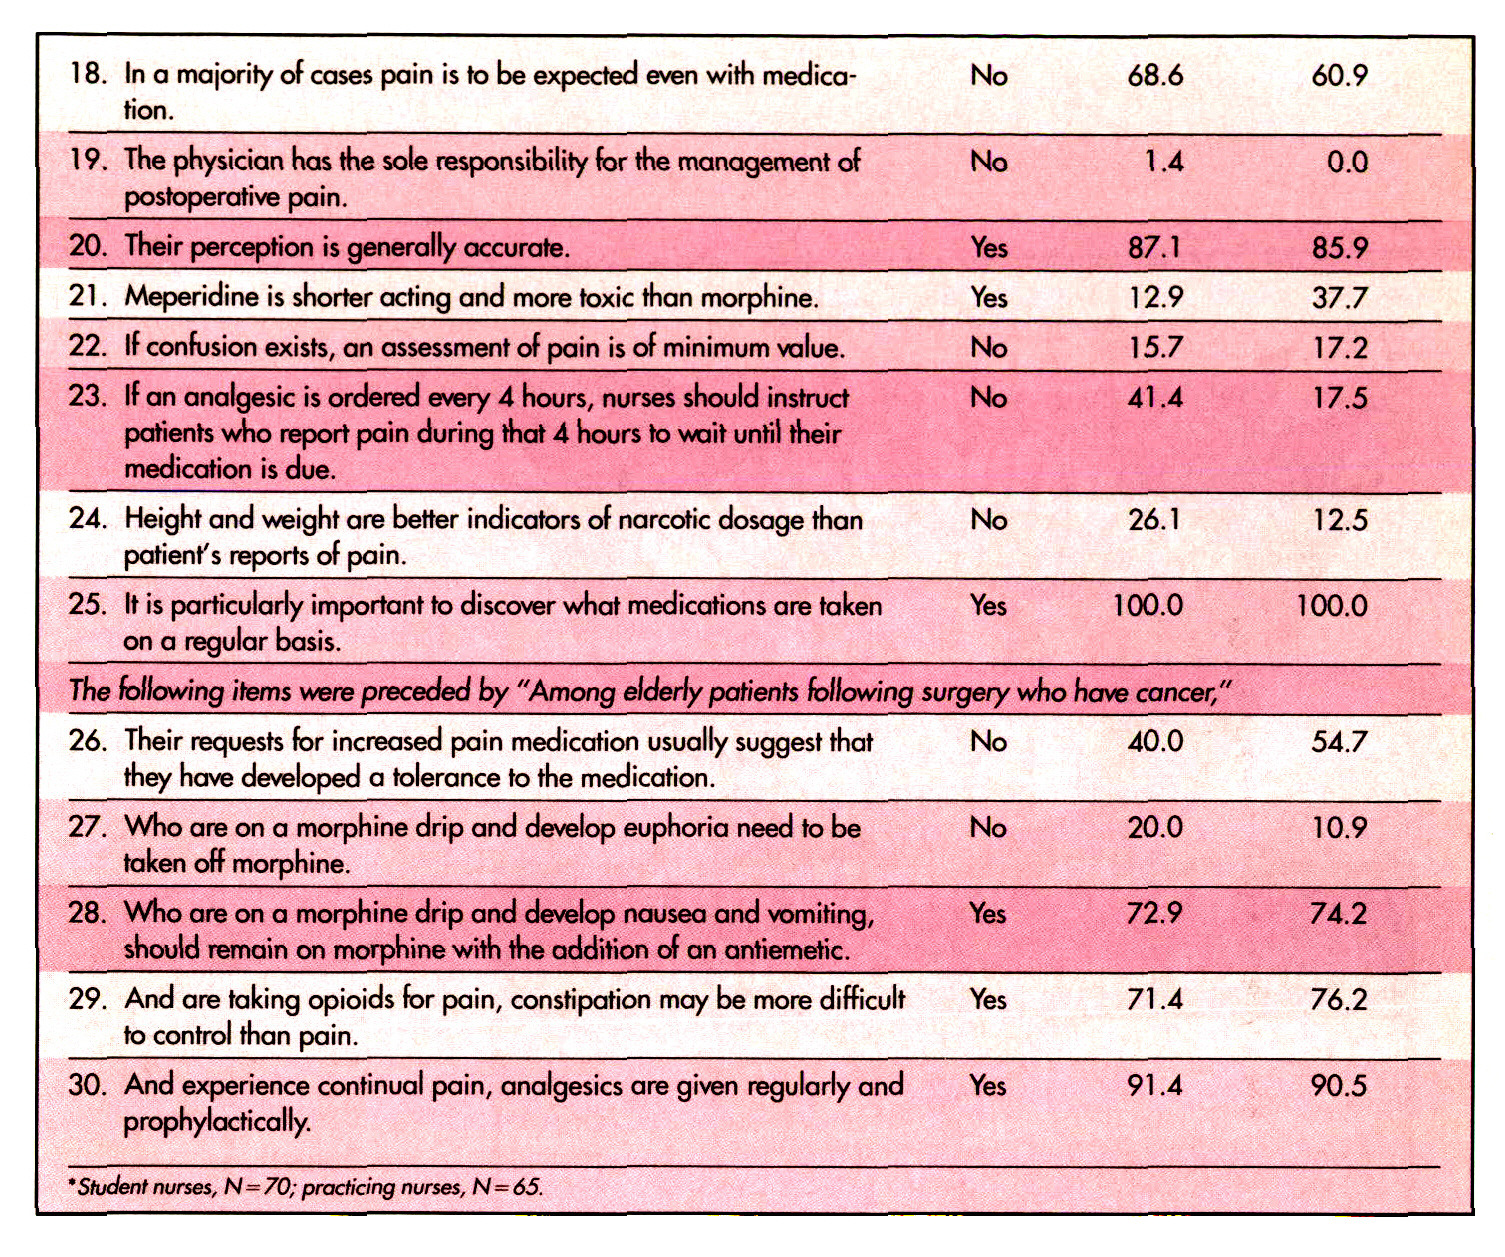 TABLE 3Percentage of Correct Responses by Student and Practicing Nurses to a Knowledge Questionnaire on Pain*